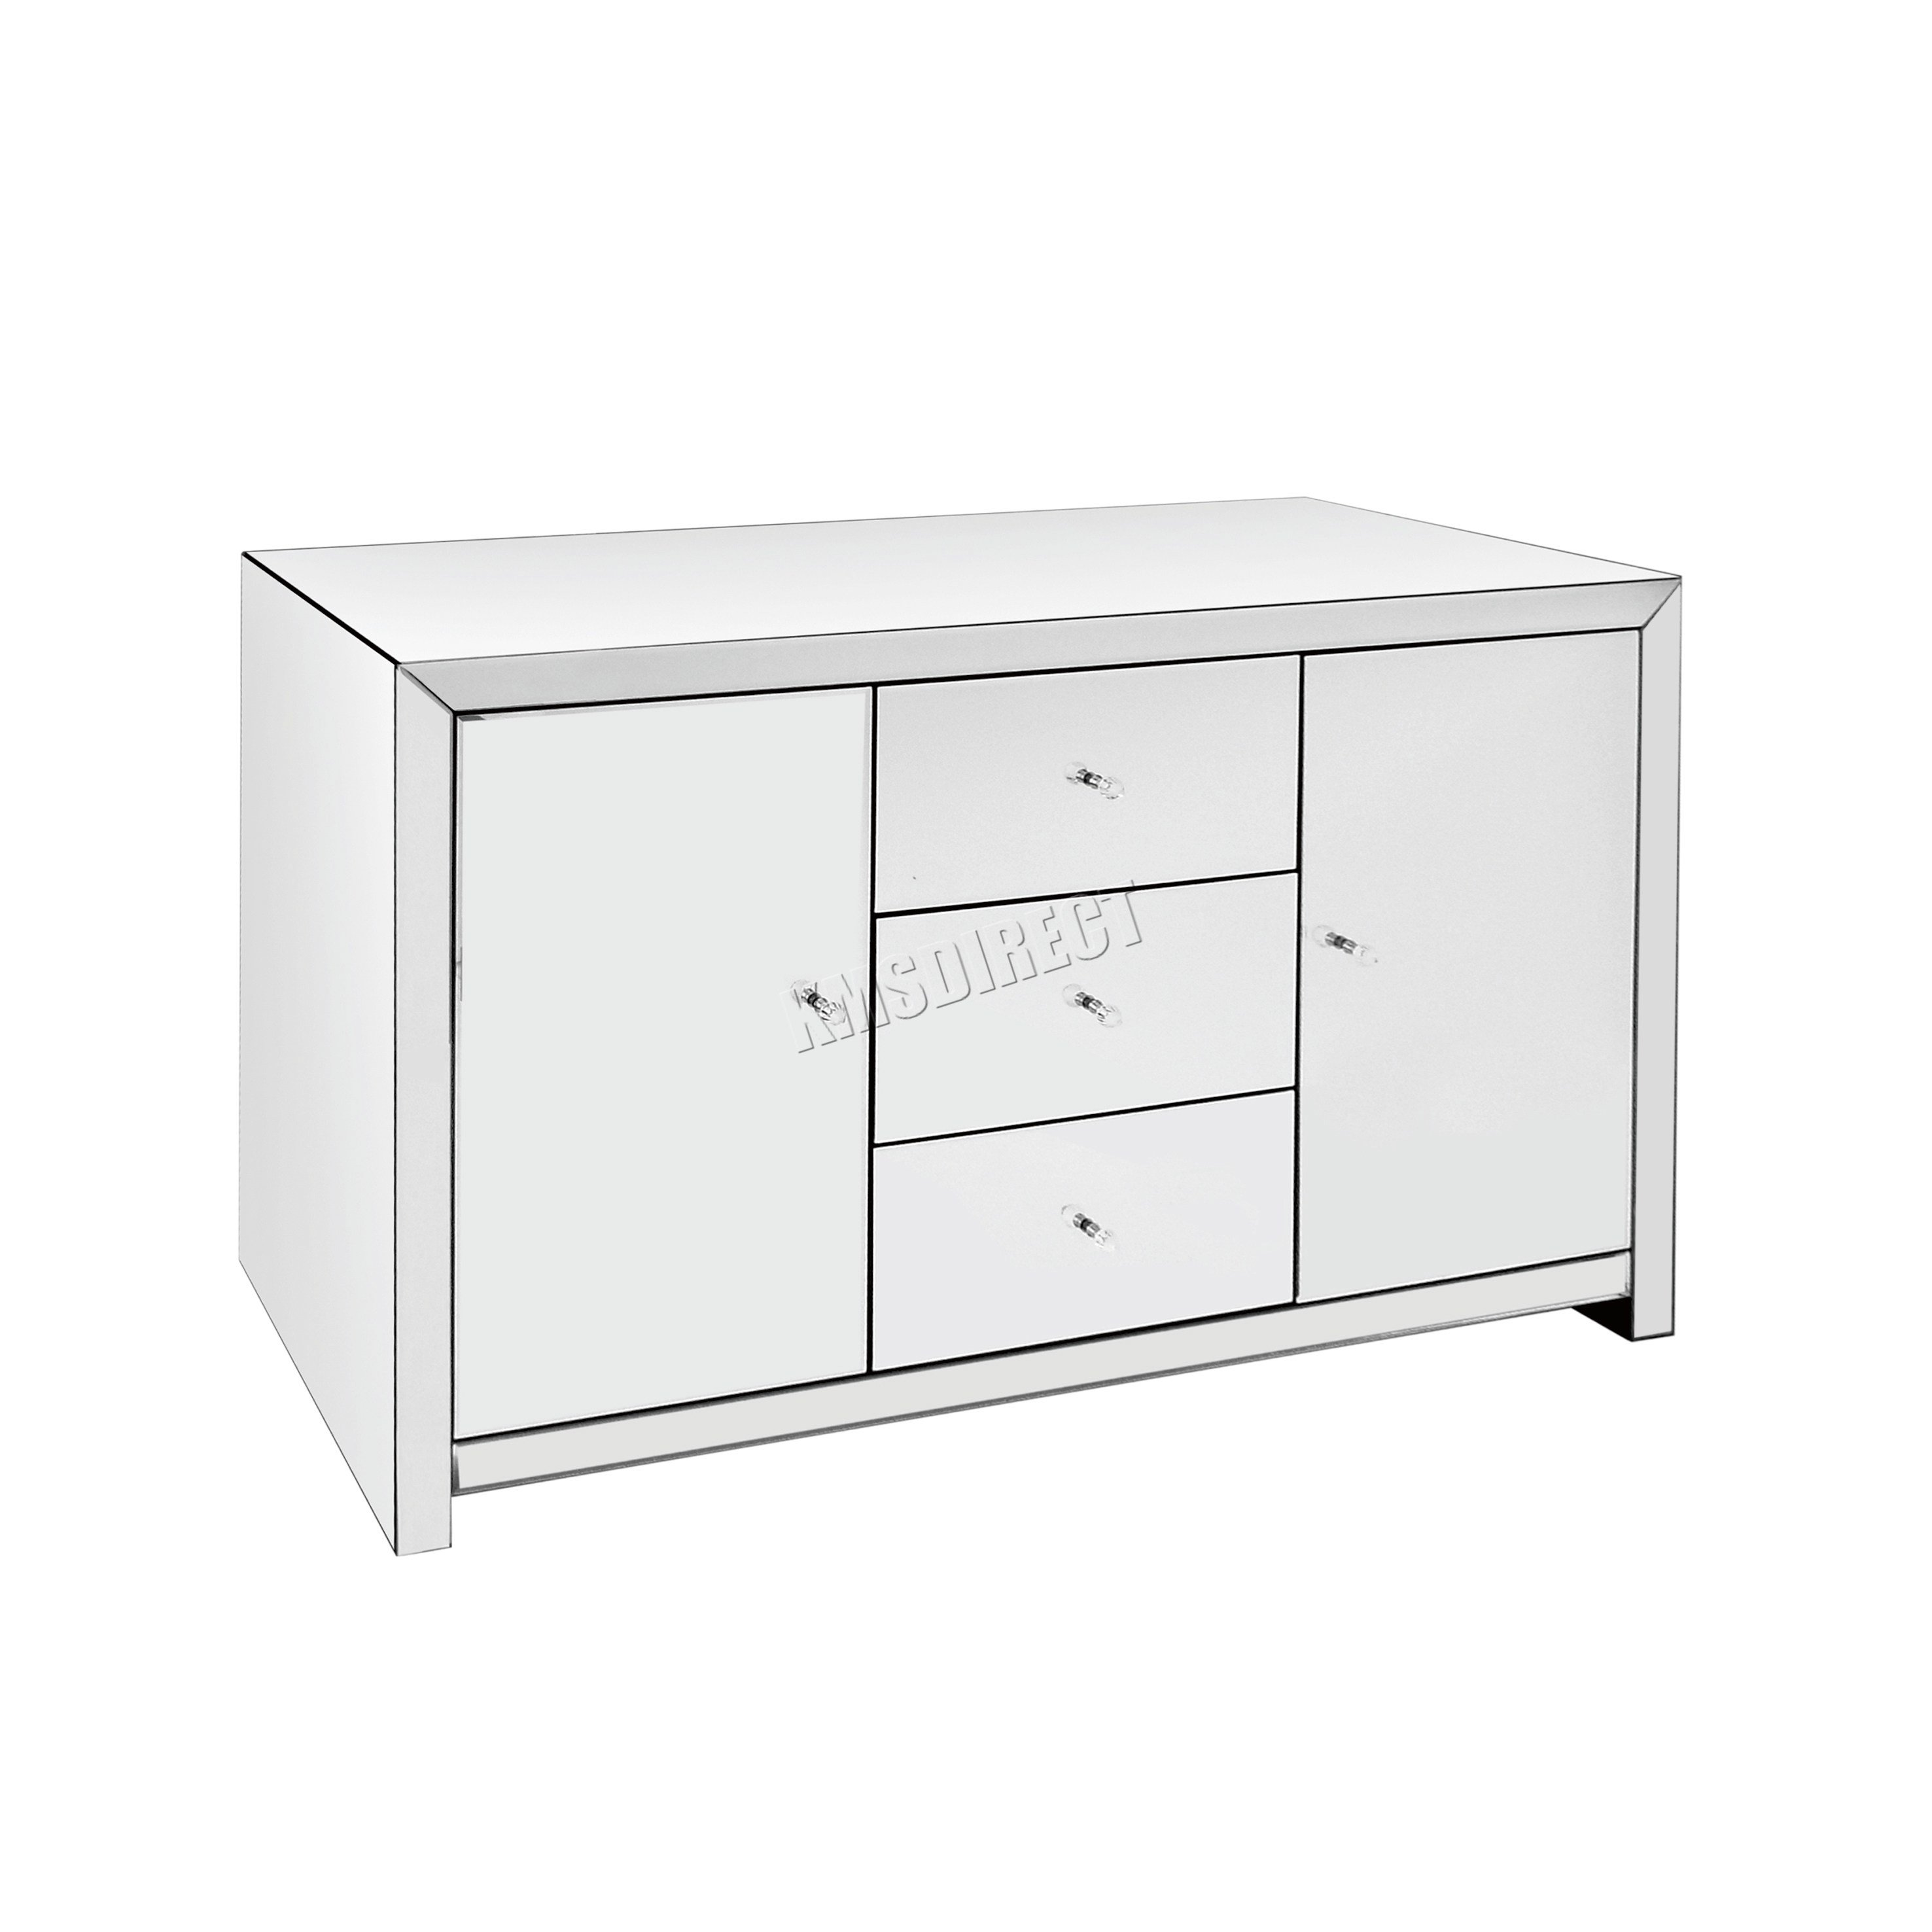 Best Westwood Mirrored Furniture Glass With Drawer Chest With Pictures